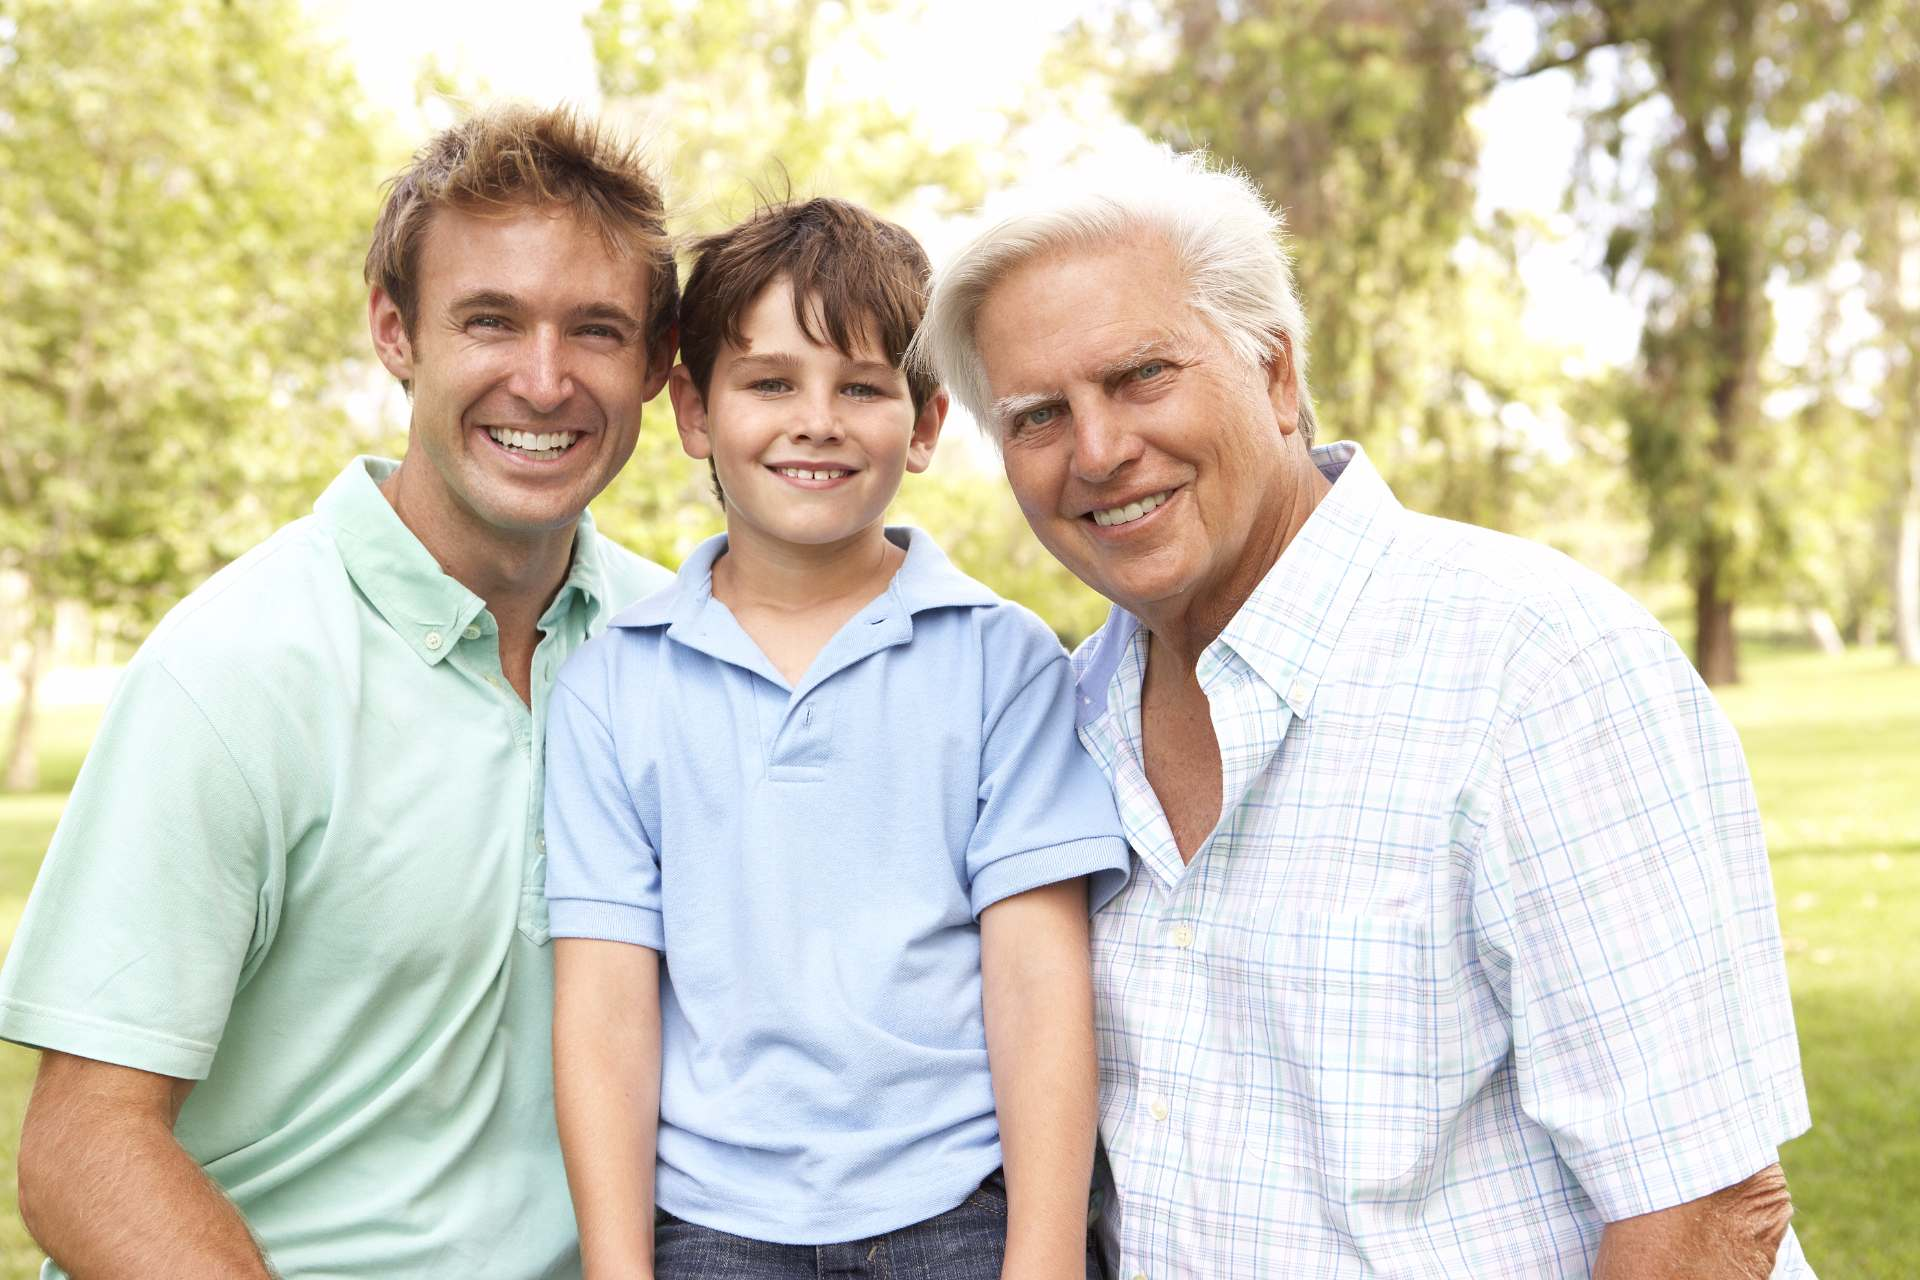 Do Prostate Issues Run in Your Family?